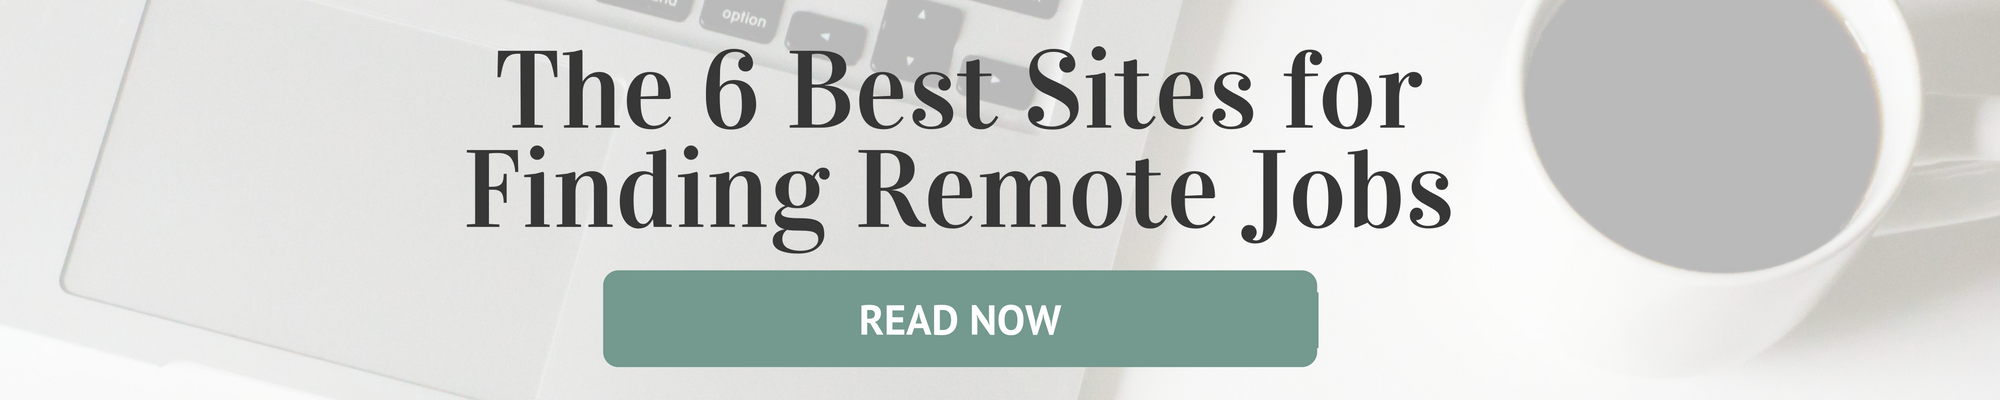 six-best-sites-for-finding-remote-jobs